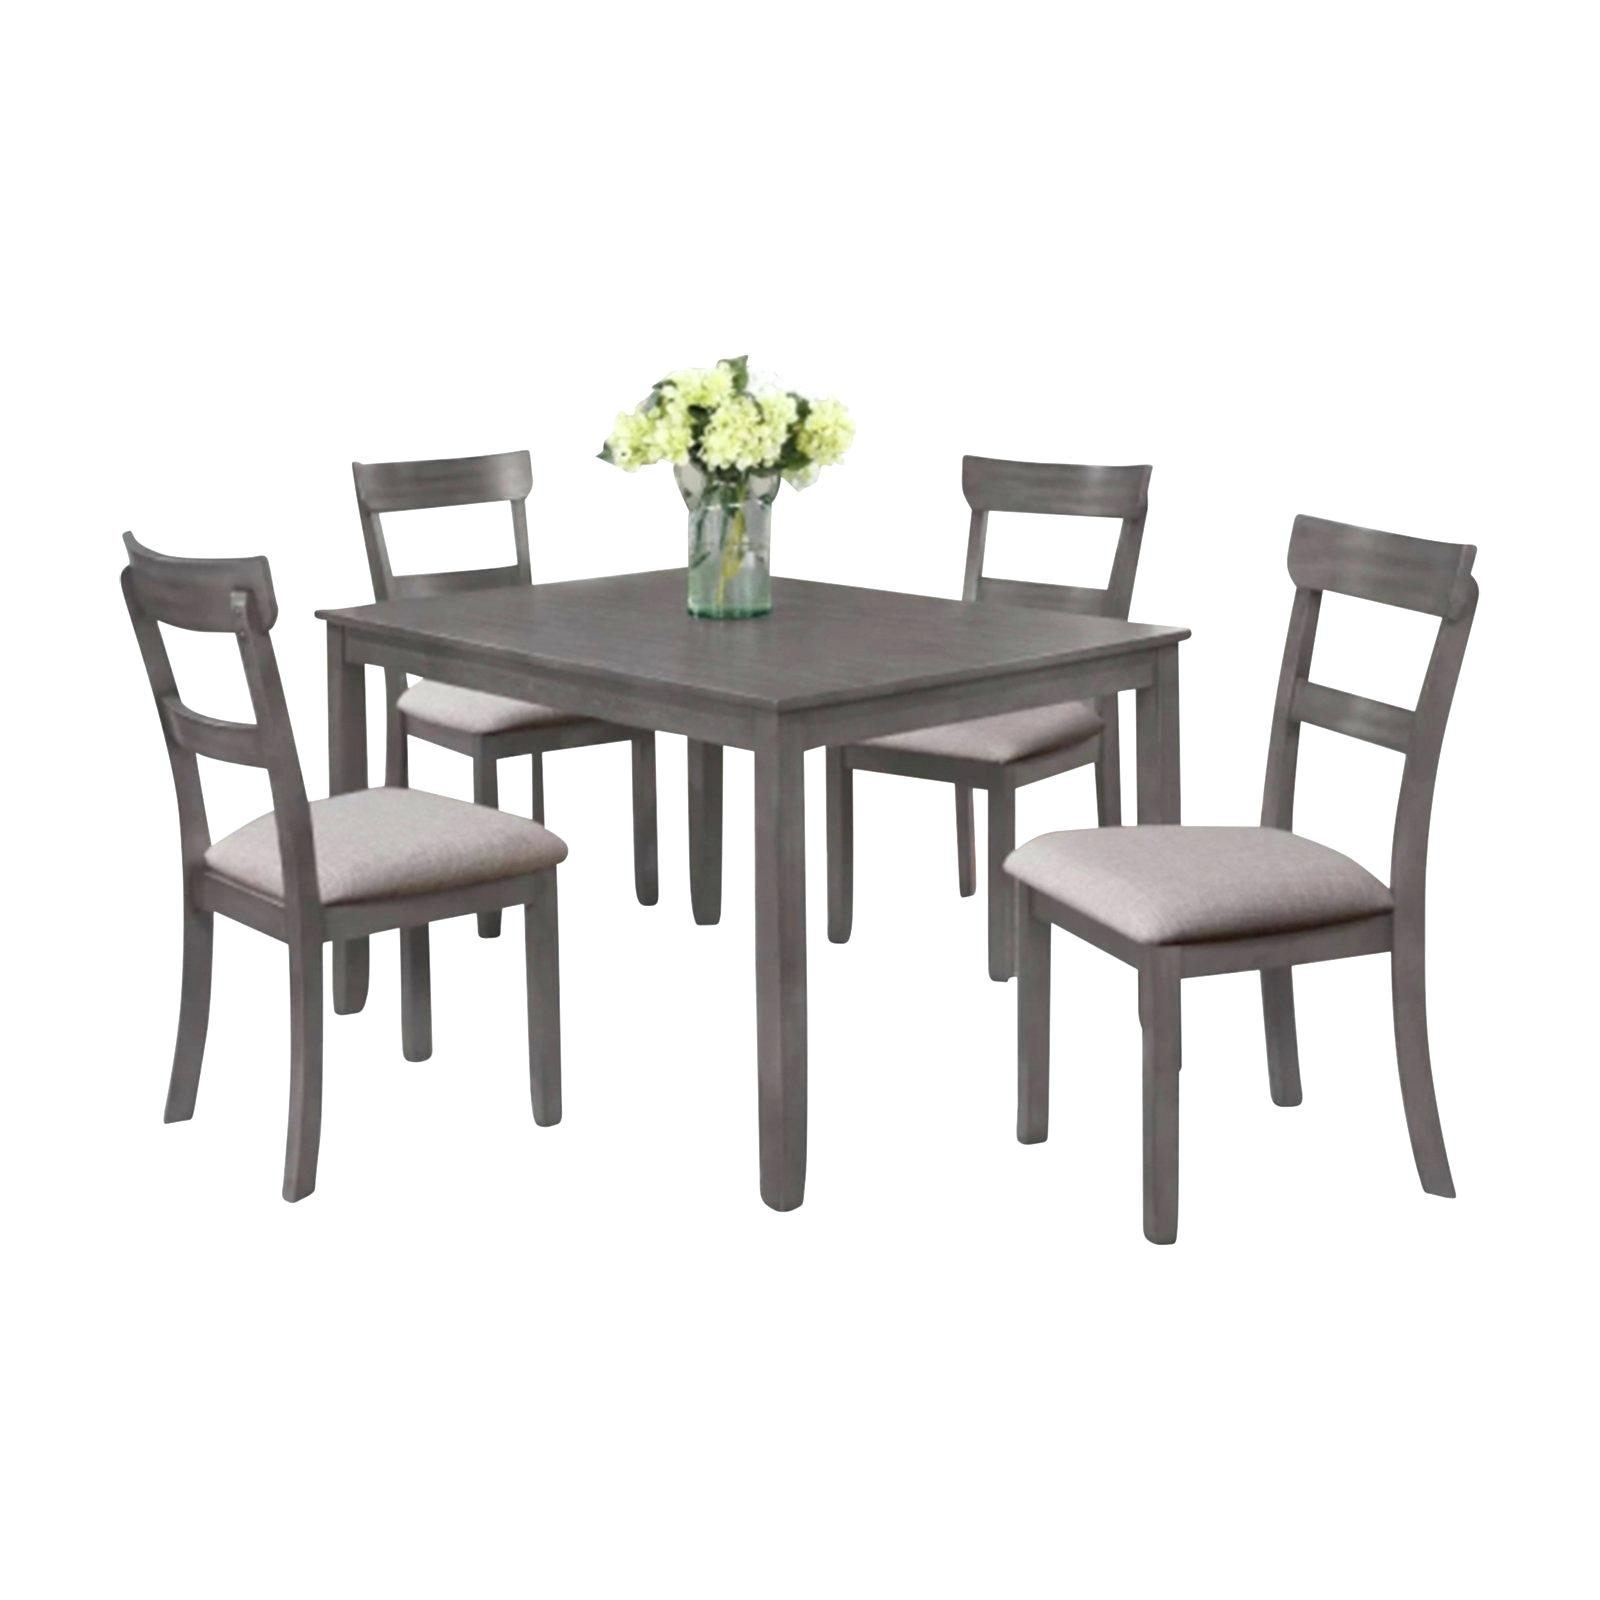 White And Gray Dining Table – Insidestories For Most Popular Gray Wash Banks Extending Dining Tables (View 6 of 25)